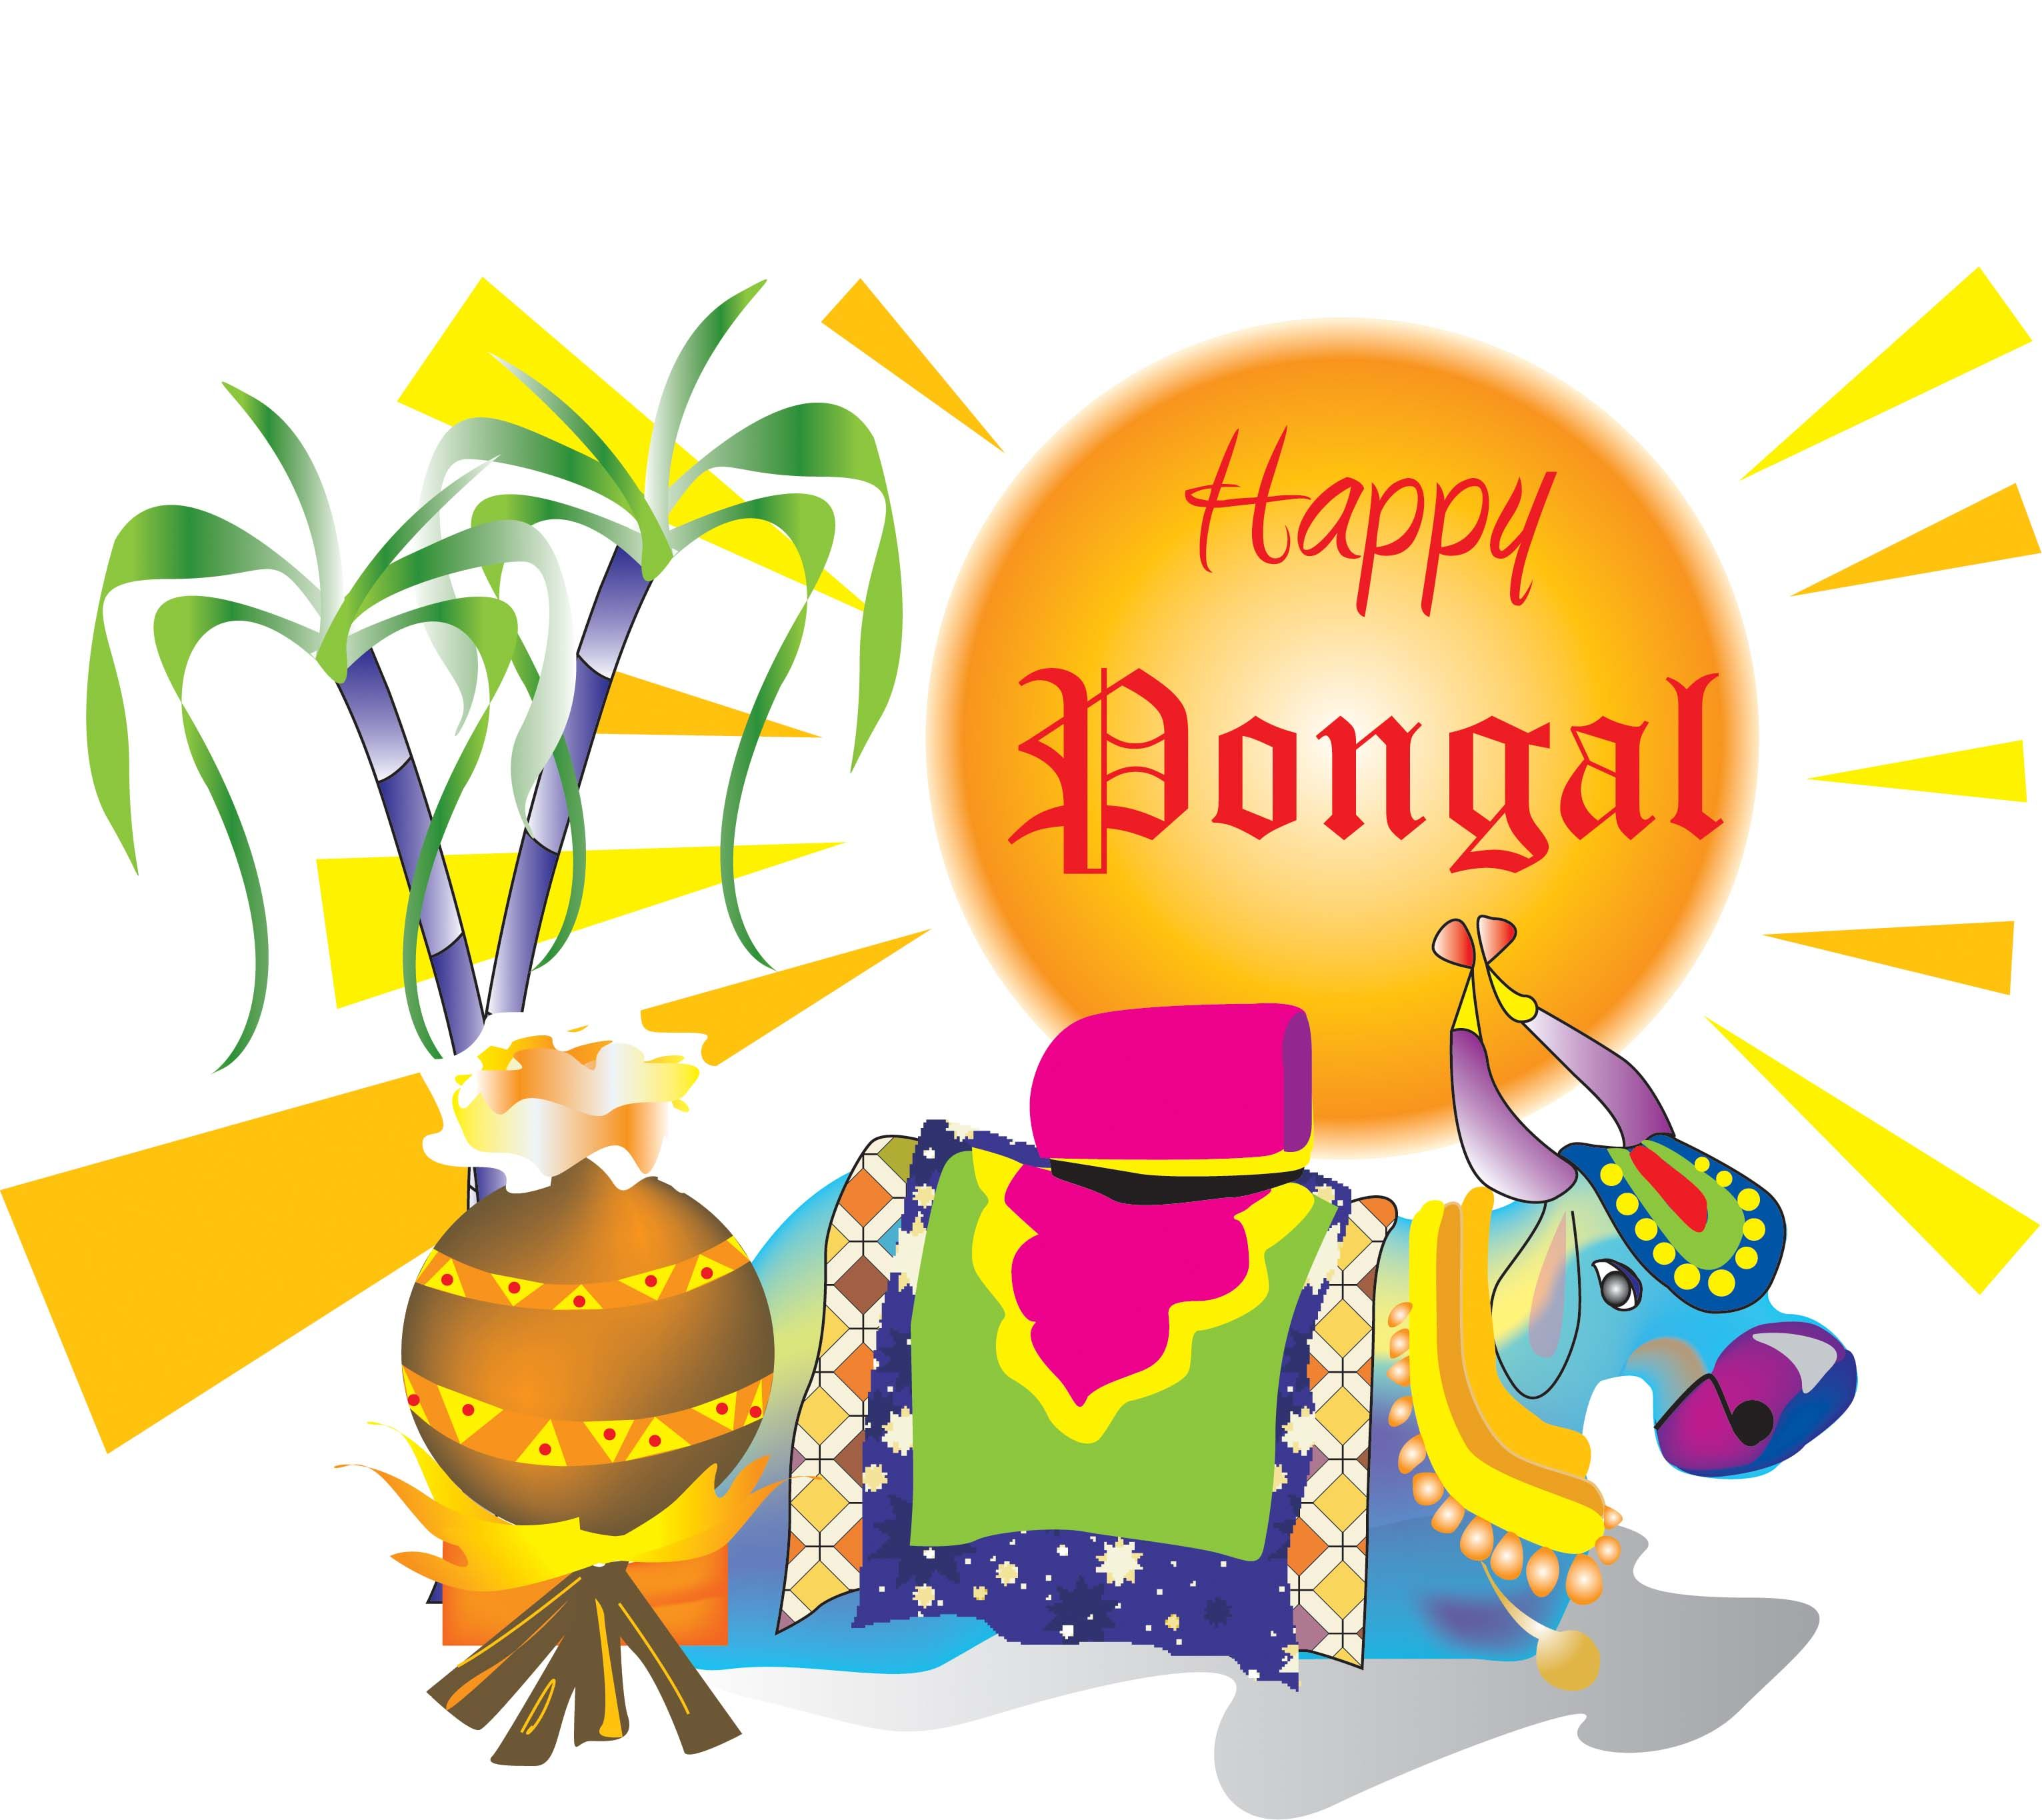 wish you happy pongal traditional harvest festival wallpaper photos images